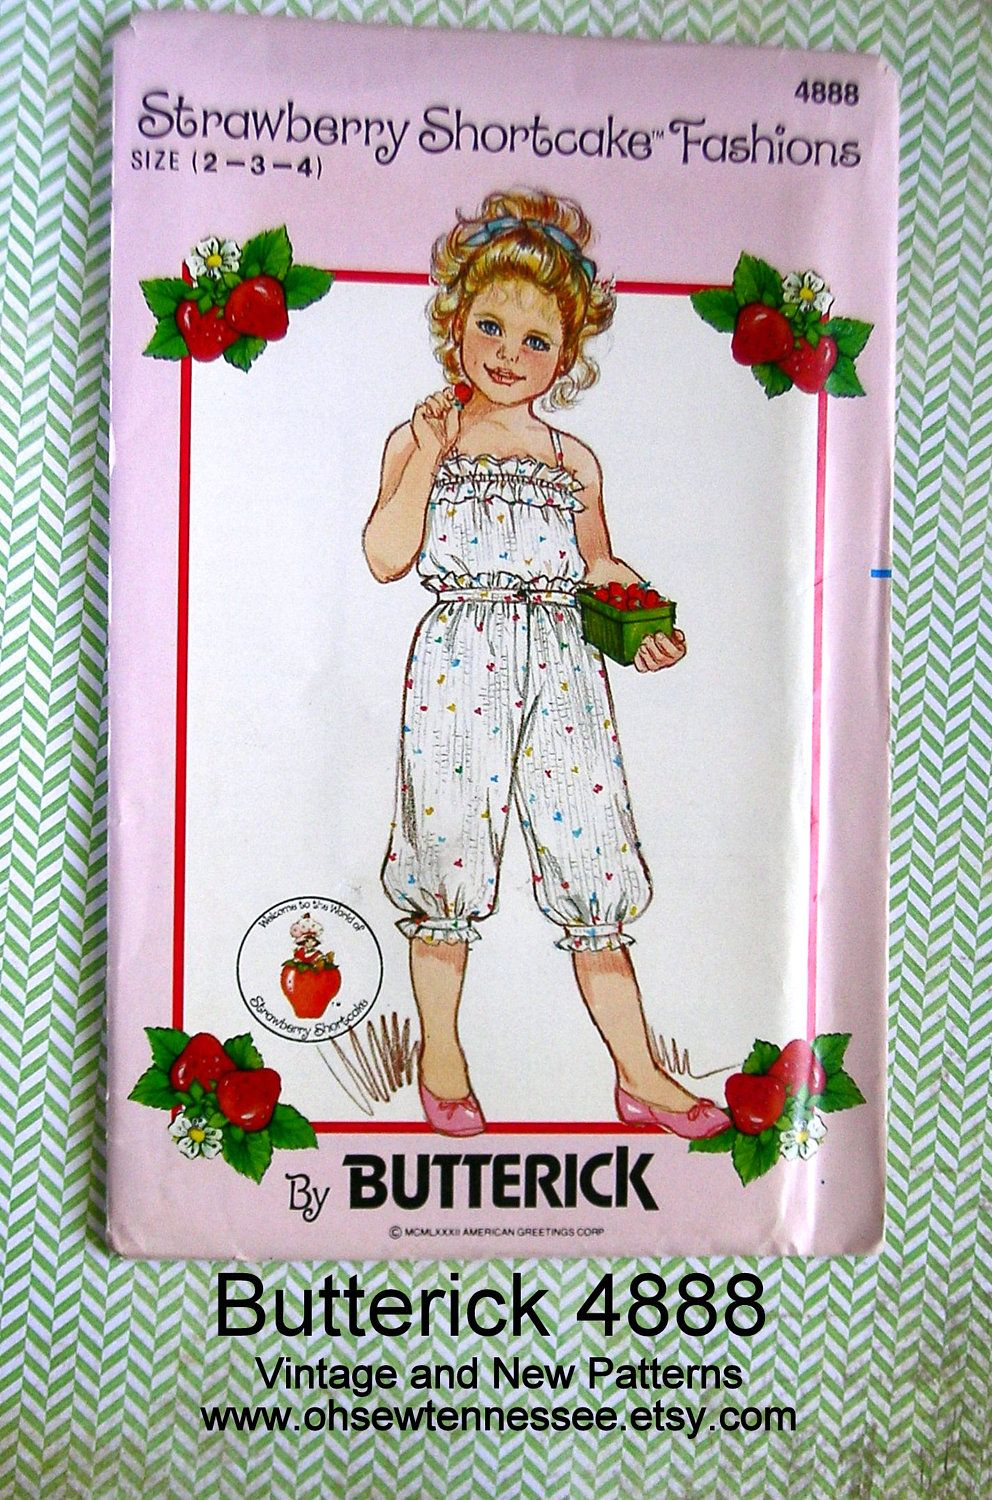 Little Girls' Camisole and Knickers, Butterick 4888, Uncut Vintage Designer Sewing Pattern, Sizes 2, 3, and 4, from www.ohsewtennessee.etsy.com.  Strawberry Shortcake designed this outfit with plenty of gathers and ruffles to thrill your little girl to no end. And, I guarantee she will want to wear it every day. There's elastic across the top, double ruffles, and spaghetti straps. The knickers have a set on waistband In front, elastic in back, mock fly front and stand-up ruffles at the waist…